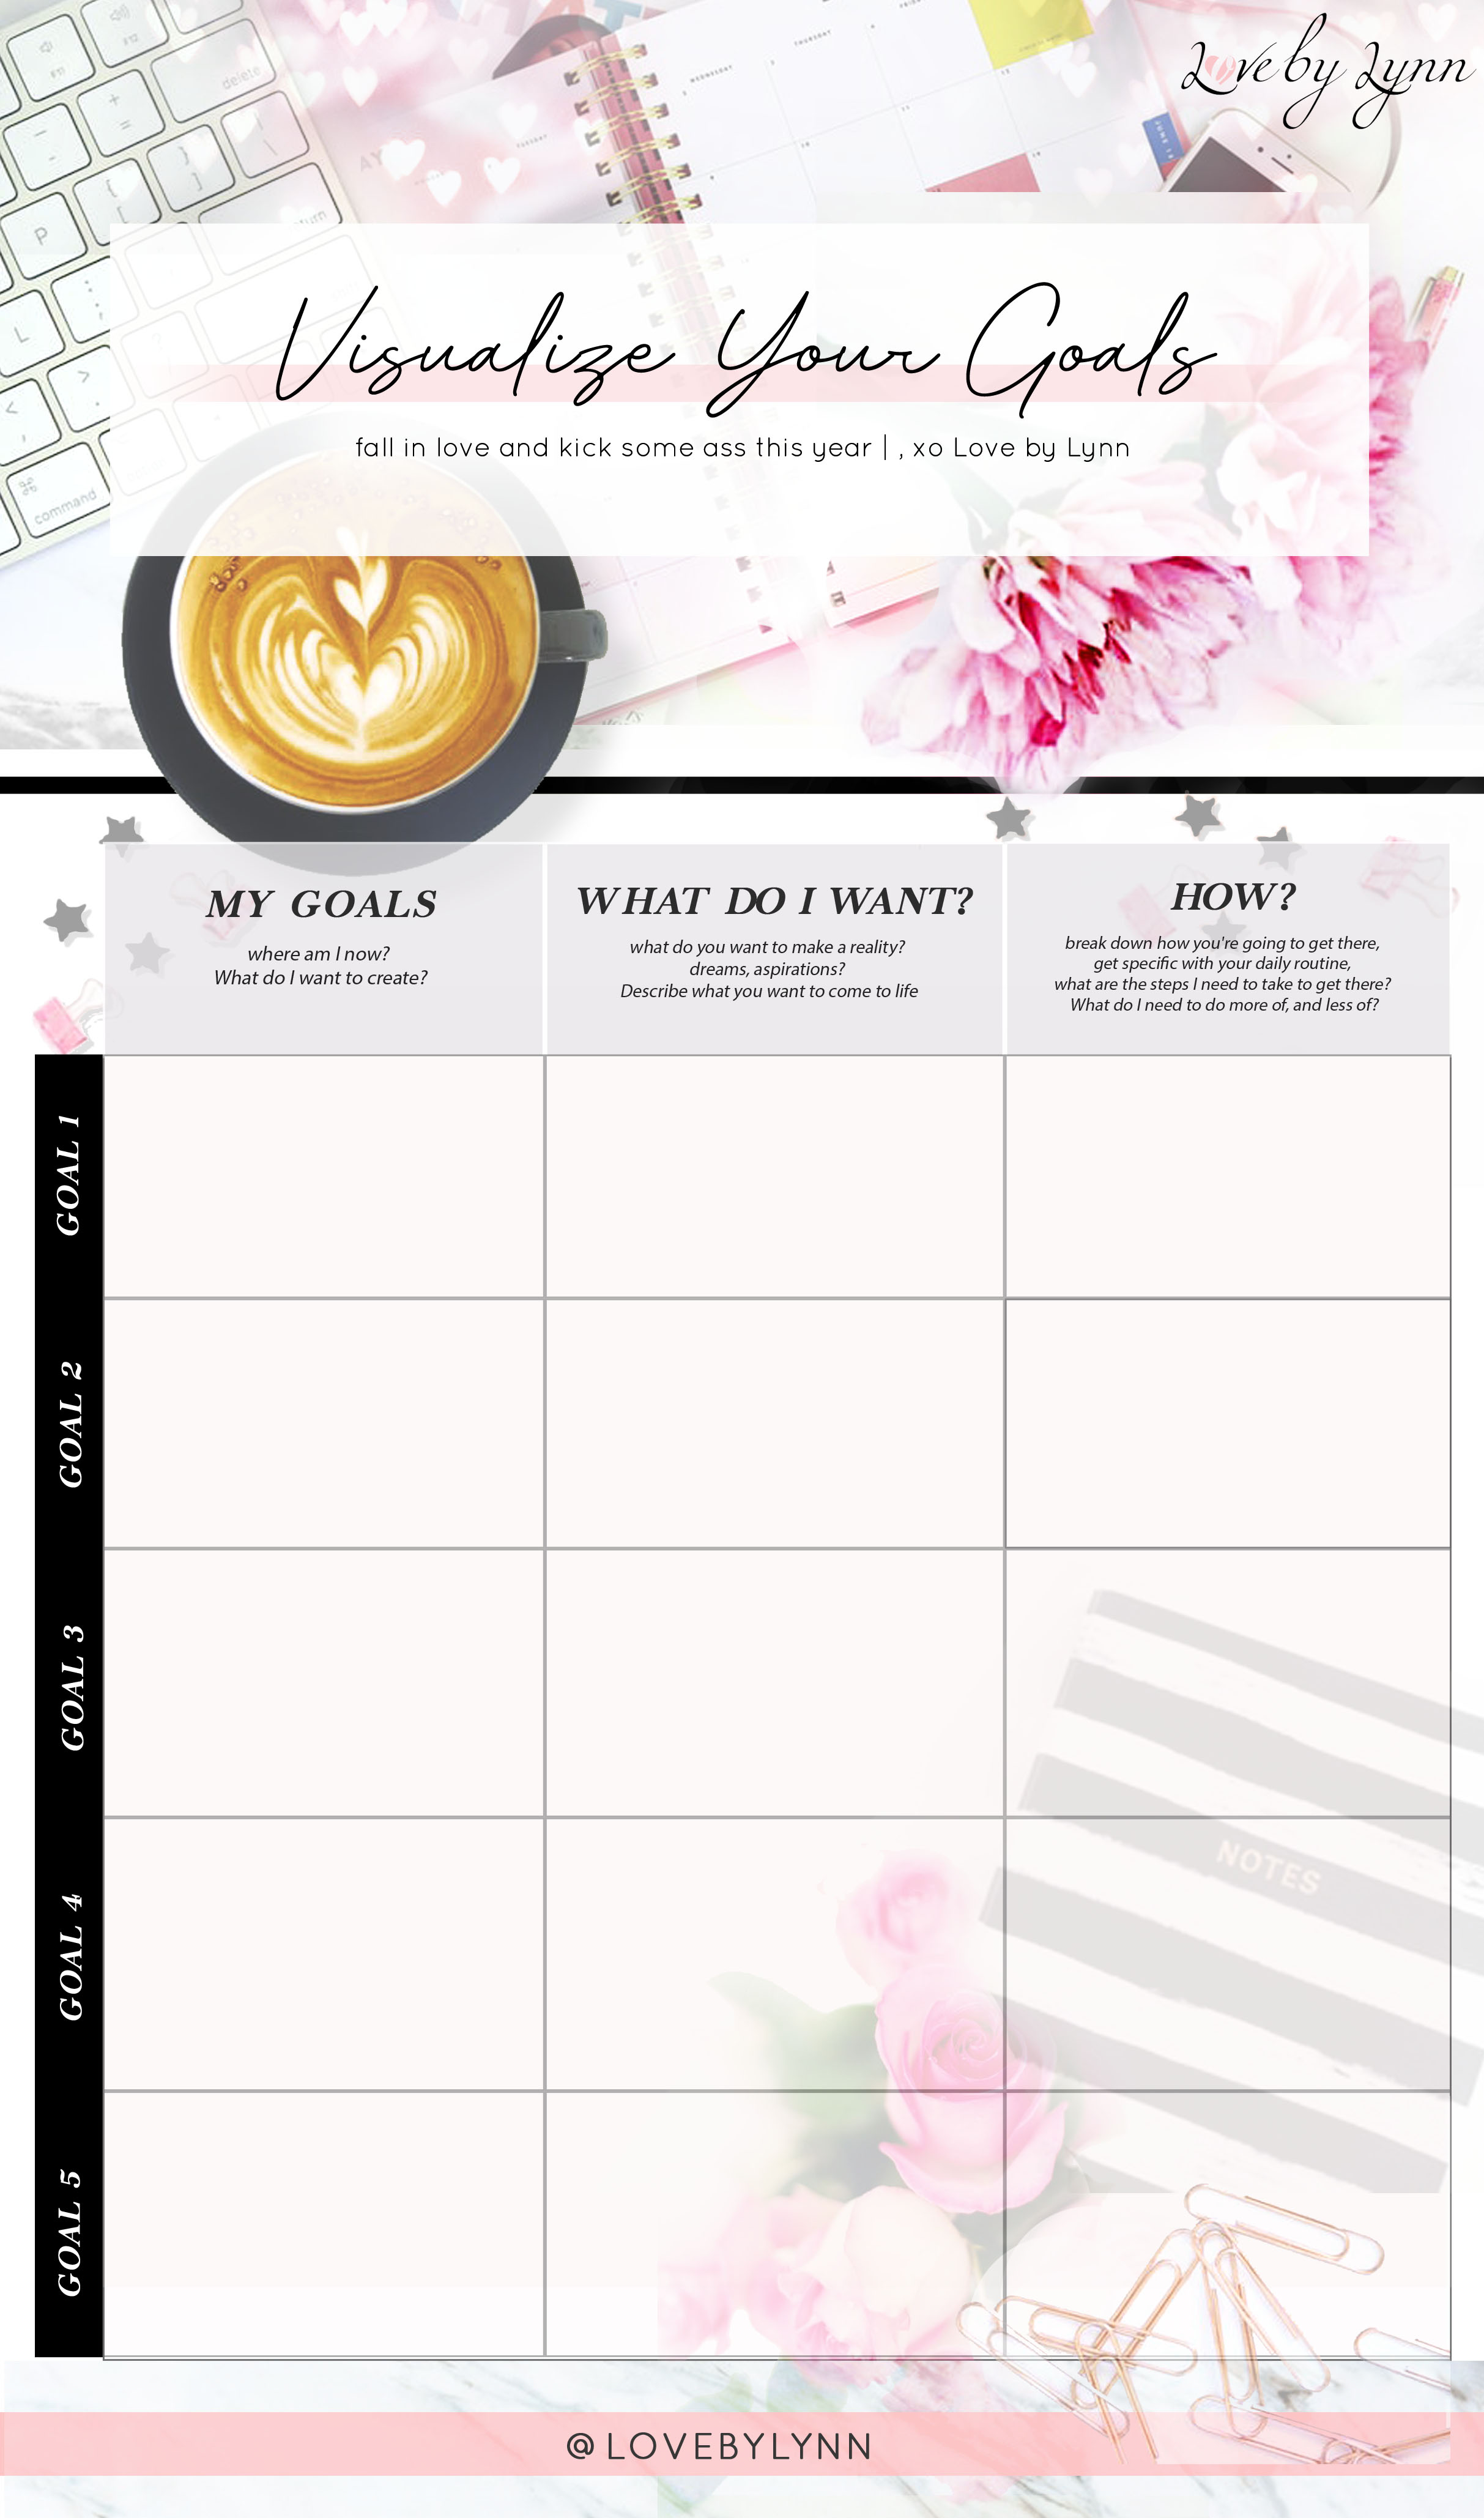 photograph about Take What You Need Printable identified as absolutely free printable purpose sheet LovebyLynn